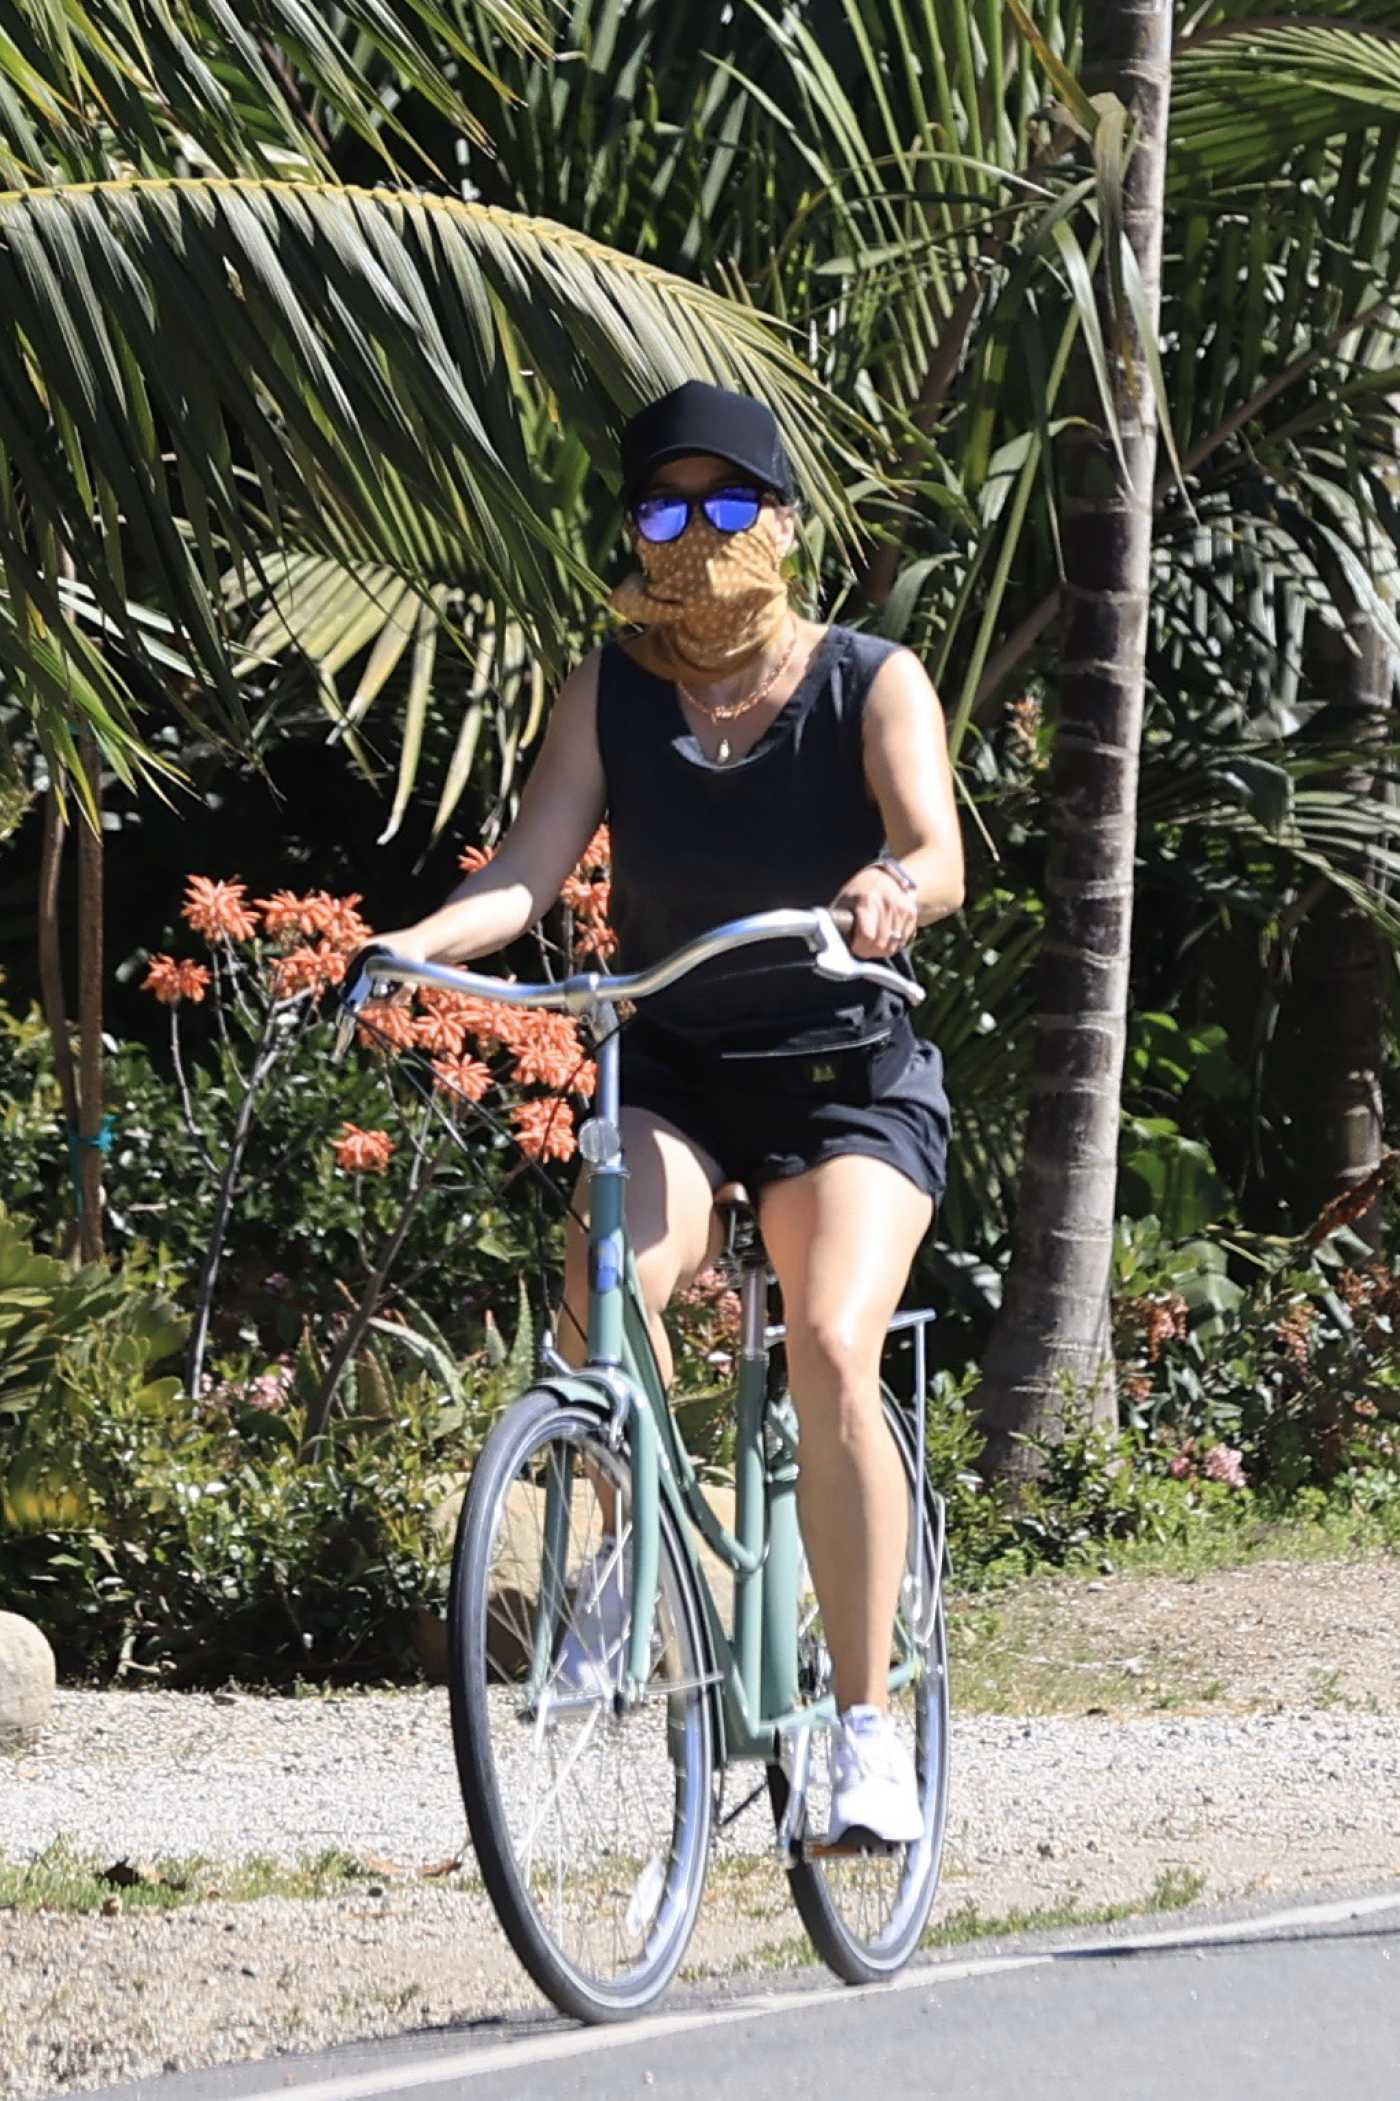 Reese Witherspoon in a White Sneakers Does a Bike Ride in Malibu 05/02/2020